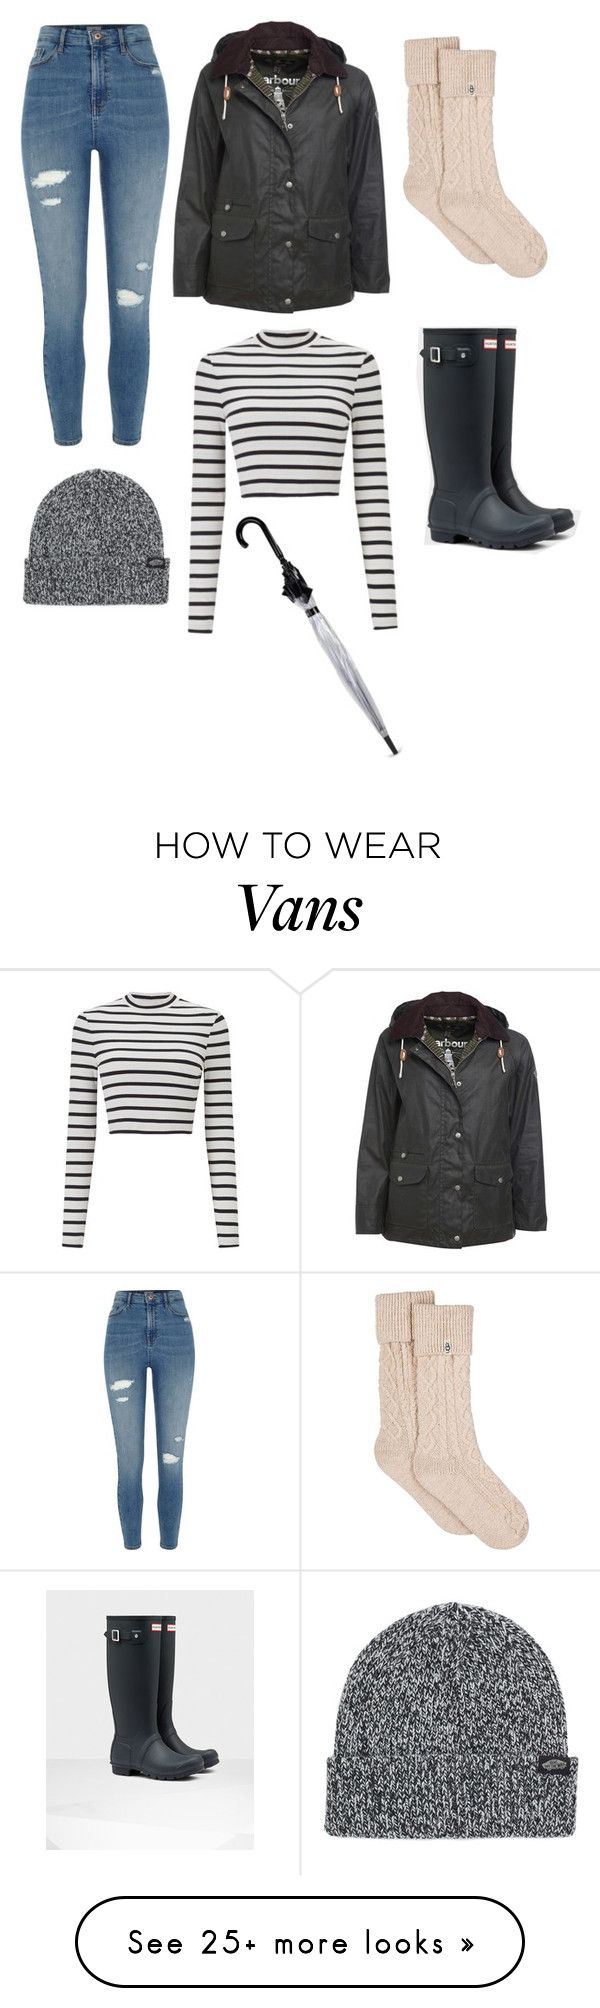 """""""Untitled #486"""" by karime-gonzalez on Polyvore featuring Miss Selfridge, River Island, Barbour, UGG, Vans and Fulton"""